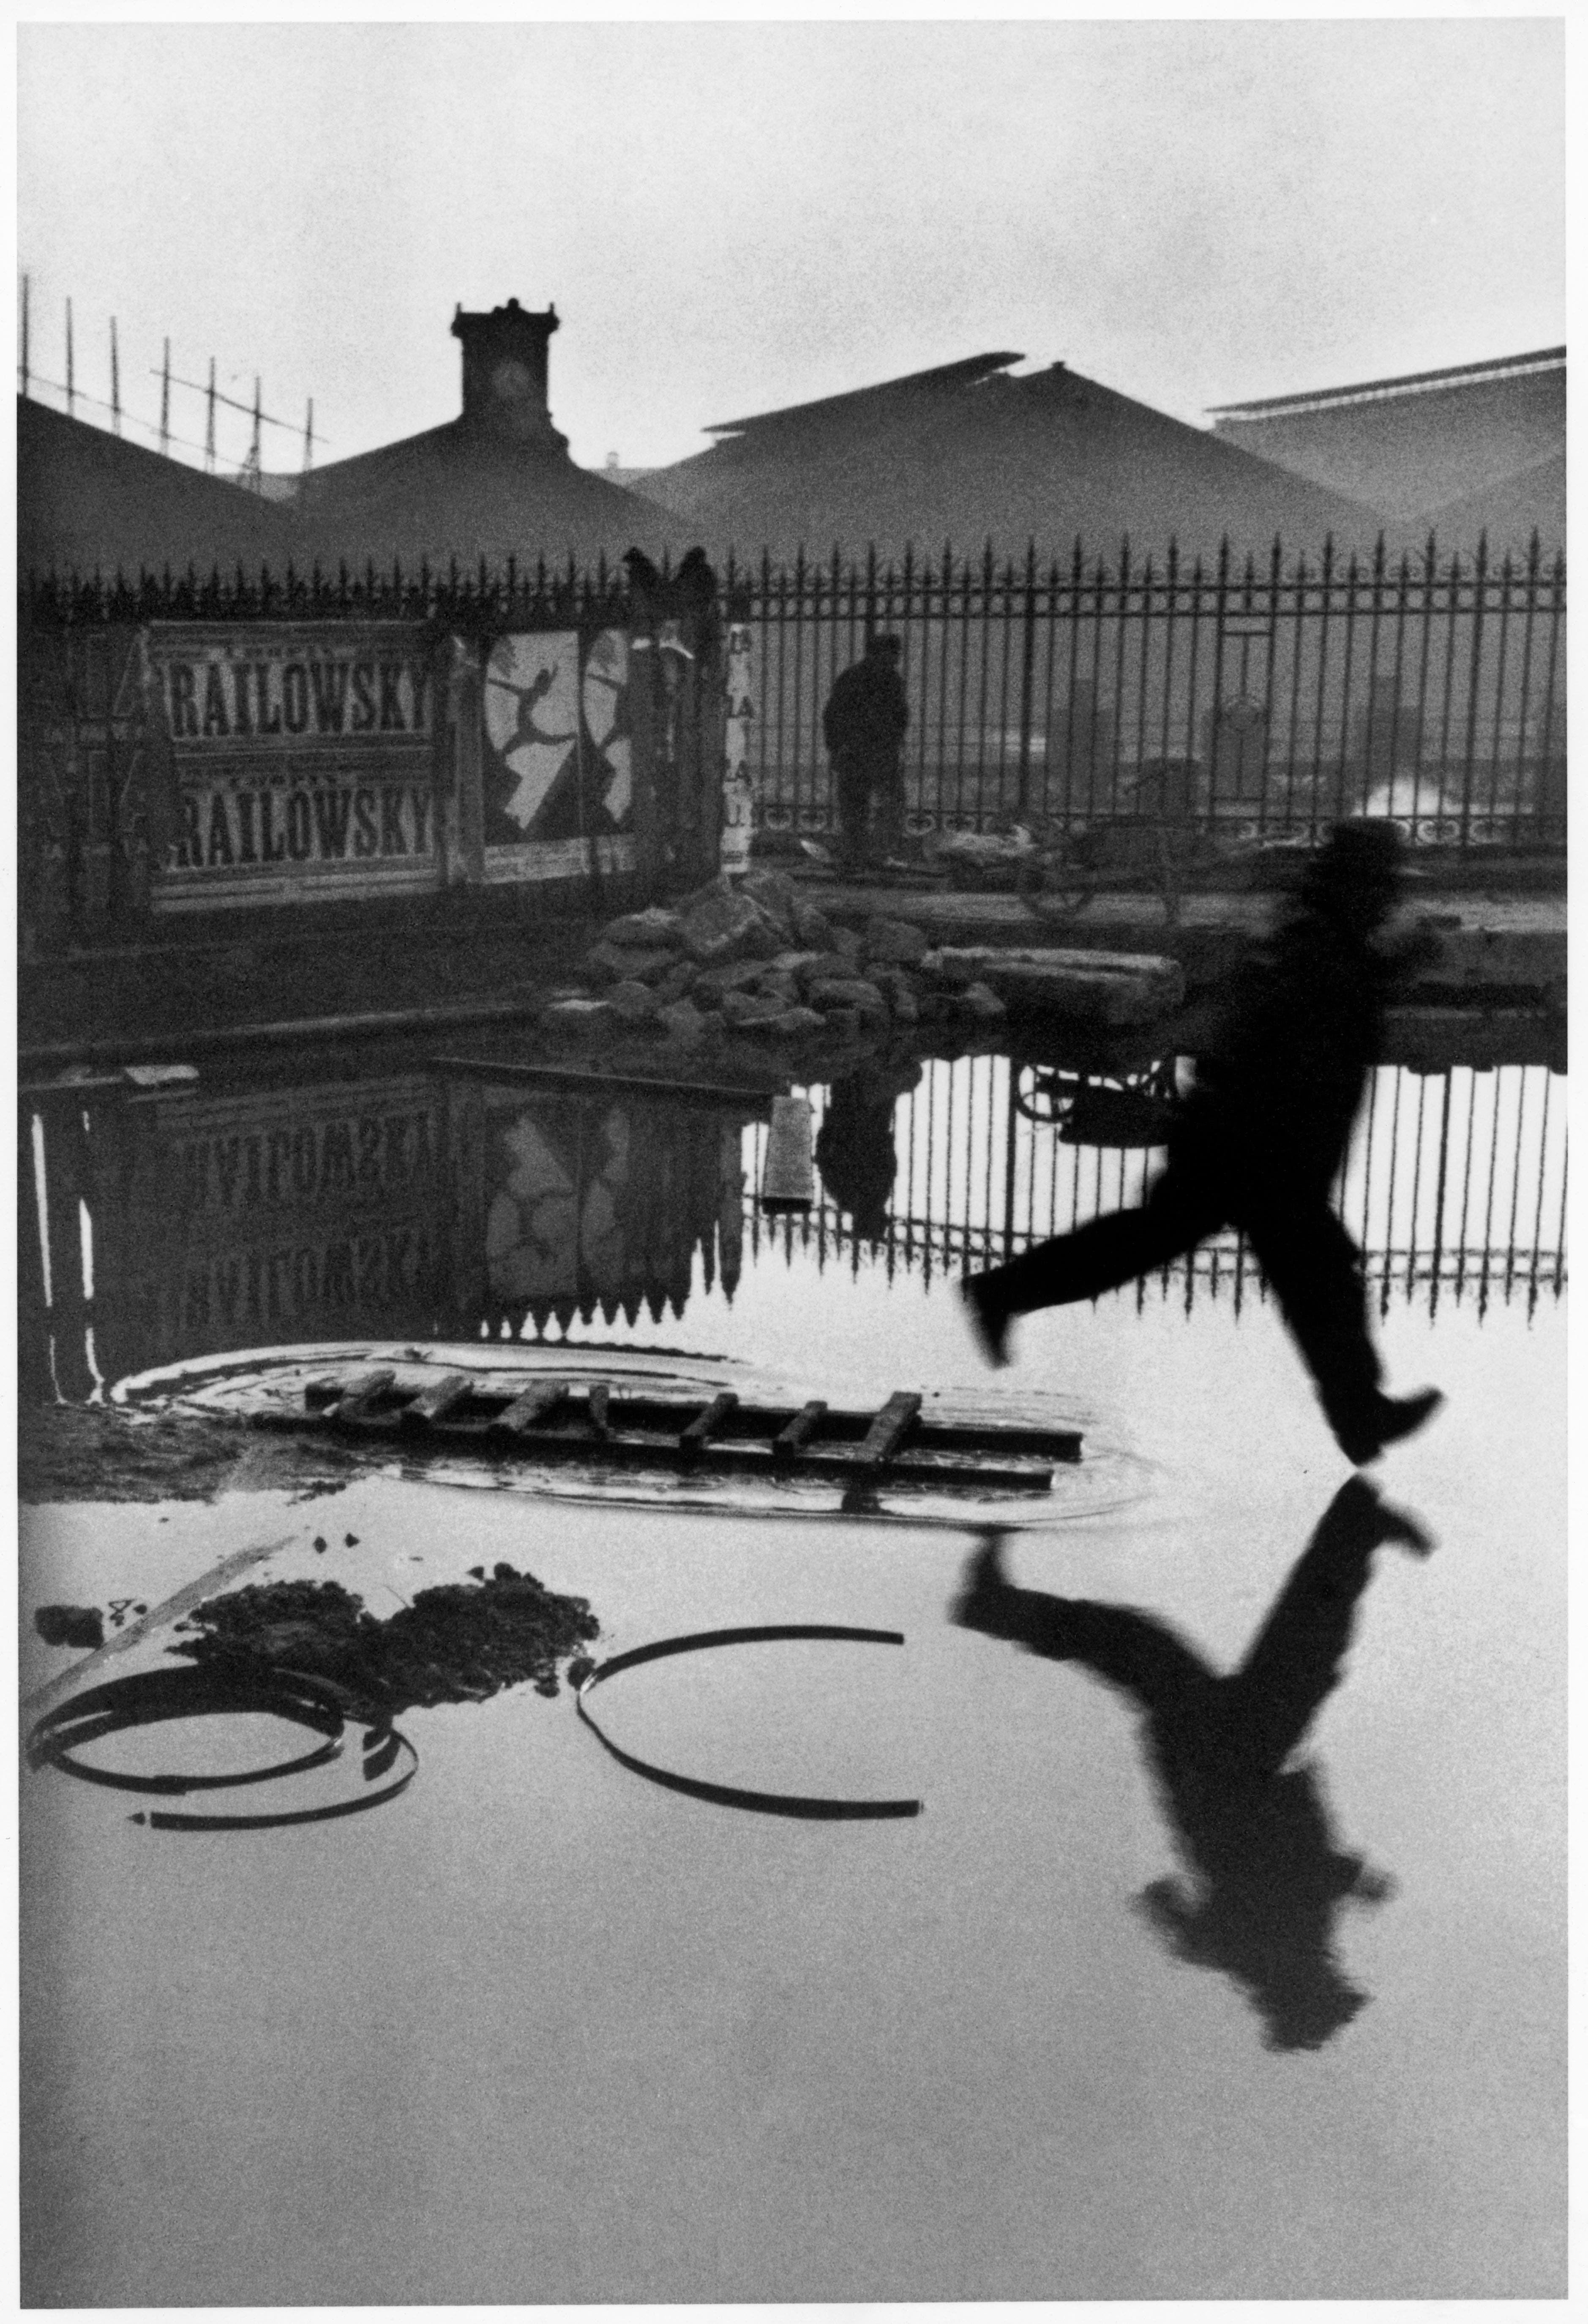 Henri-Cartier Bresson's Best Decisive Moments on Display at ICP